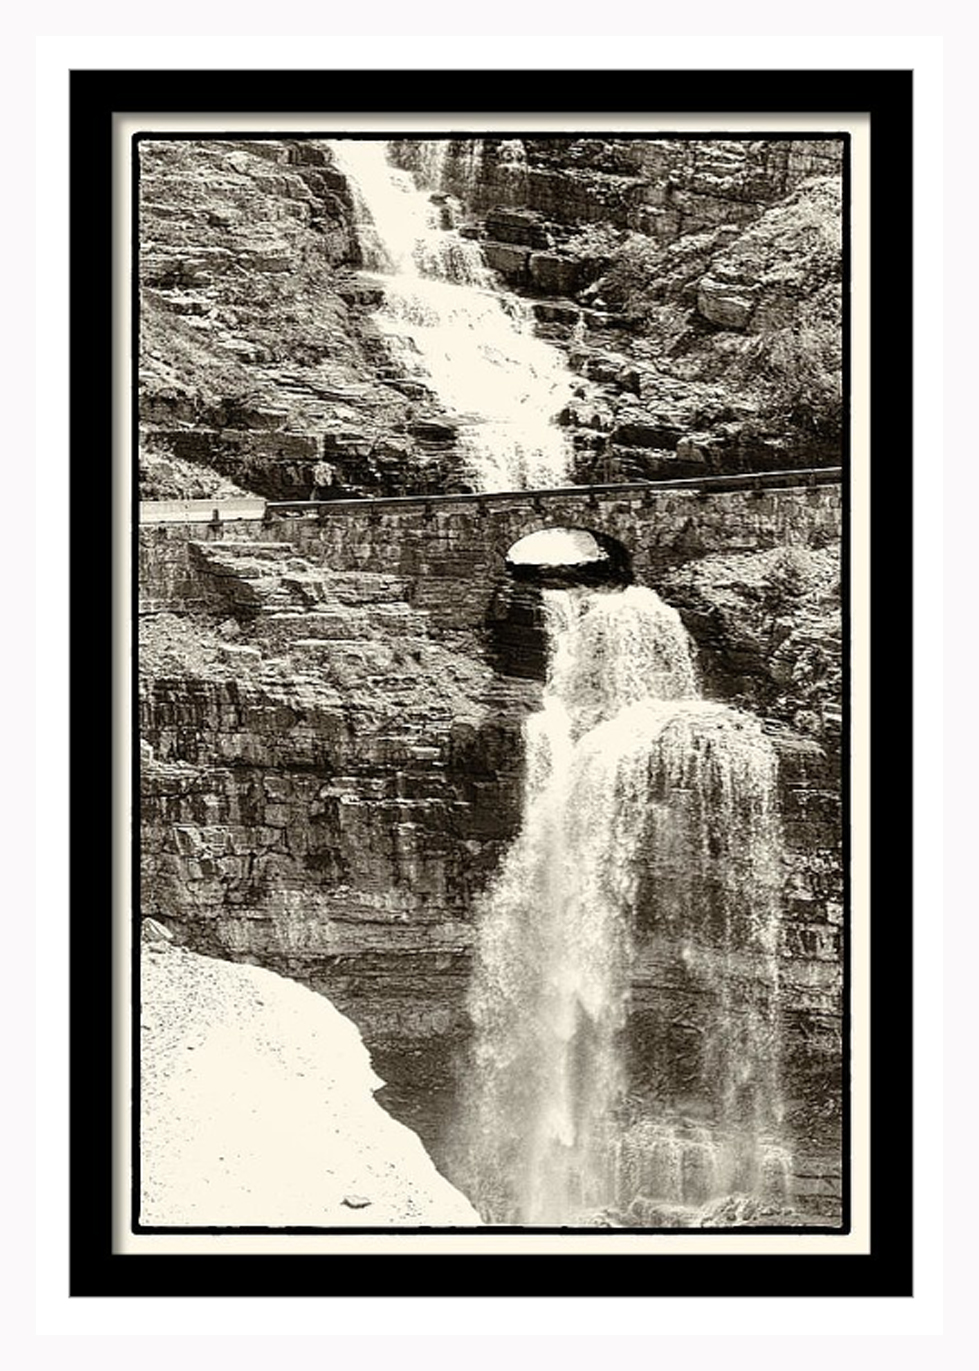 16x20 Framed print with-out matte